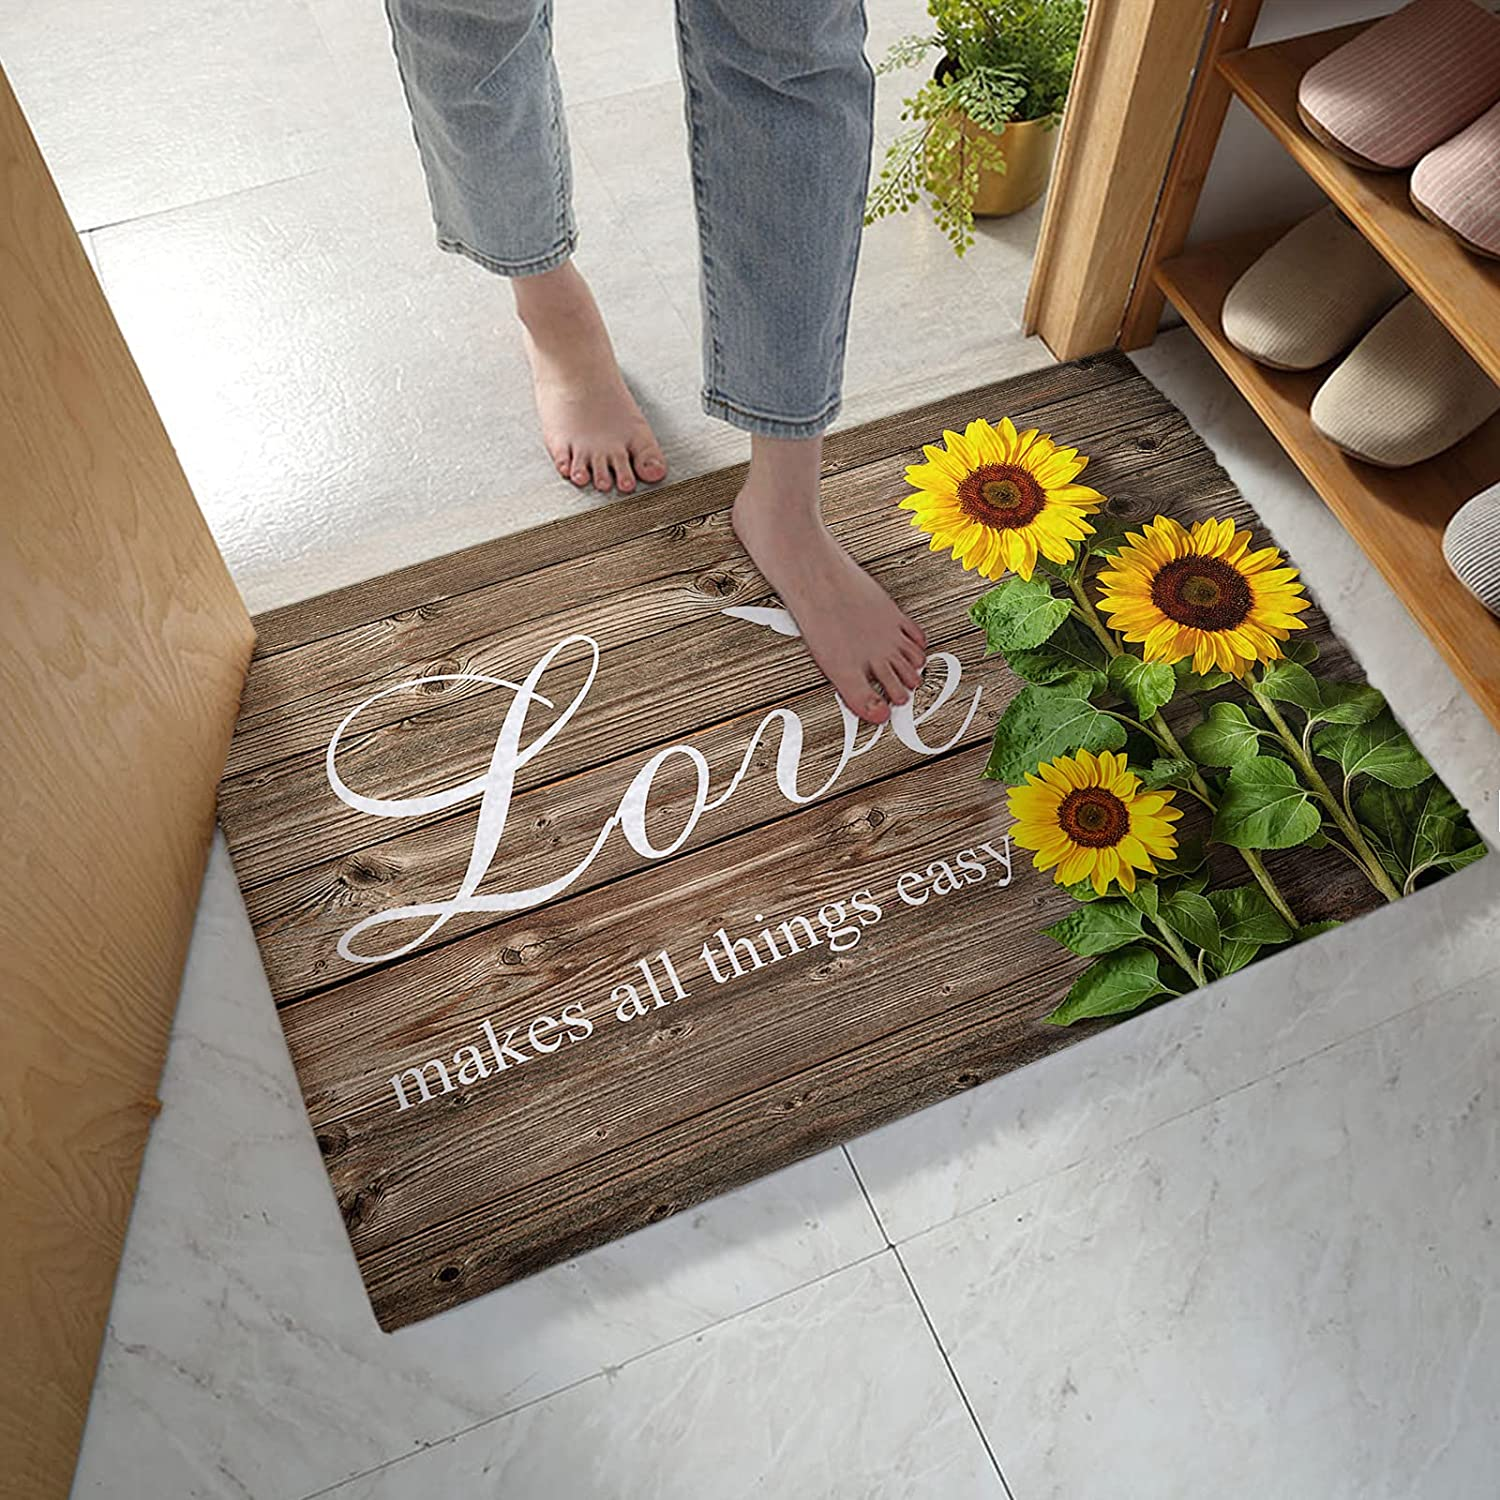 Indoor Doormat Front Door Mat Love Sunshin Now free shipping Makes Easy All Sale special price Things